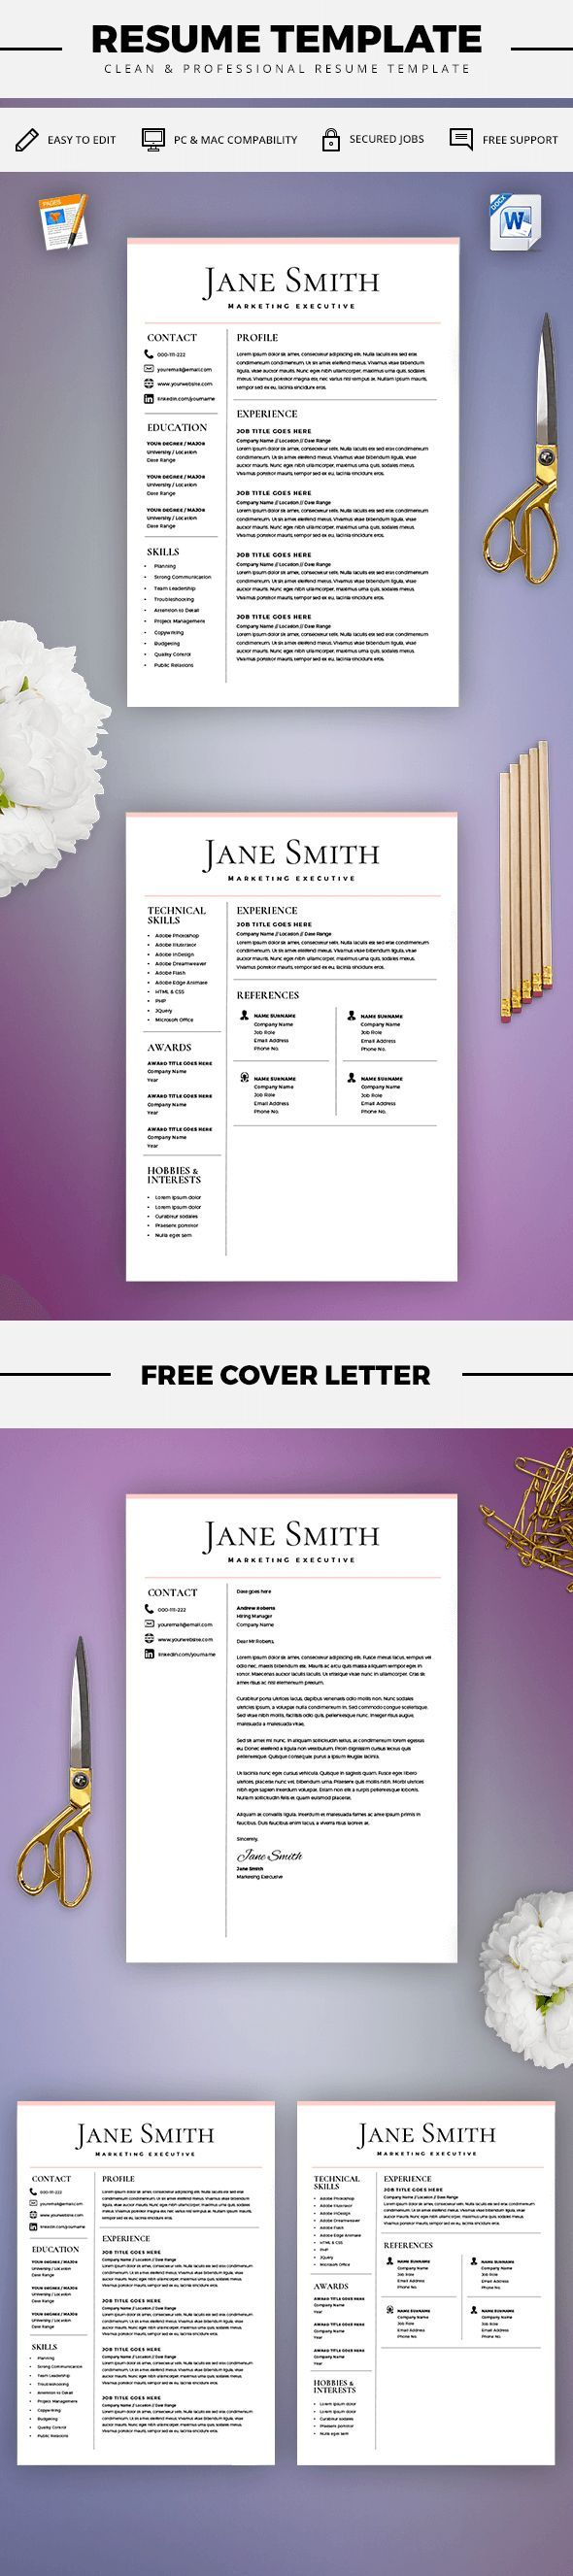 Resume Template - CV Template + Cover Letter - MS Word on Mac / PC - Design - Professional - Best Resume Templates - Instant Download